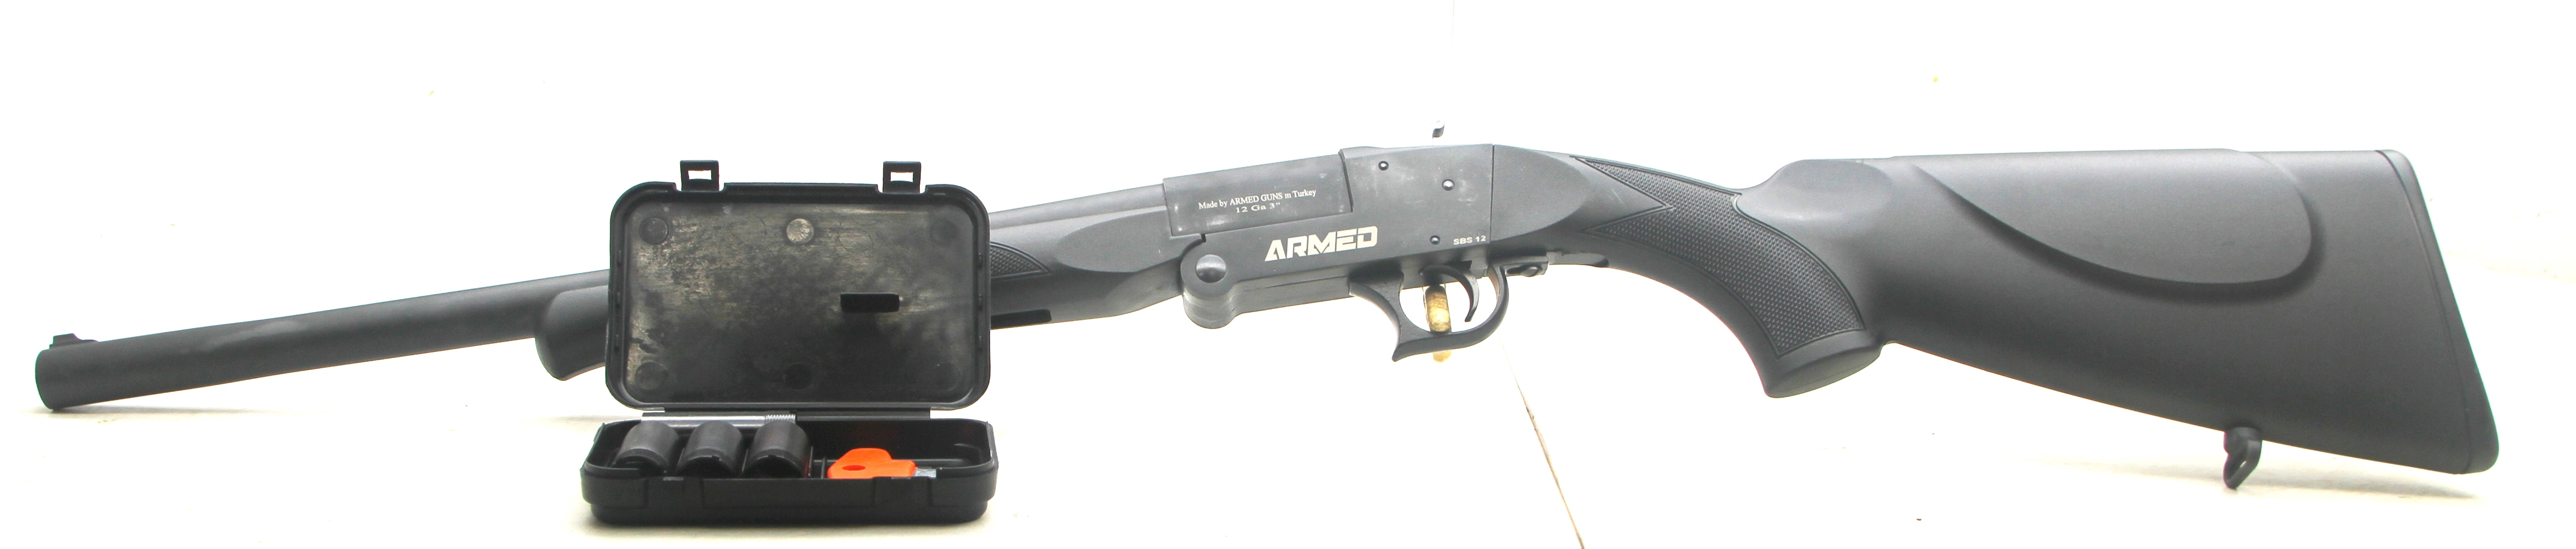 "Backpacker ARMED SASH ""SHORTY"", 19"" BARREL 12 GA"